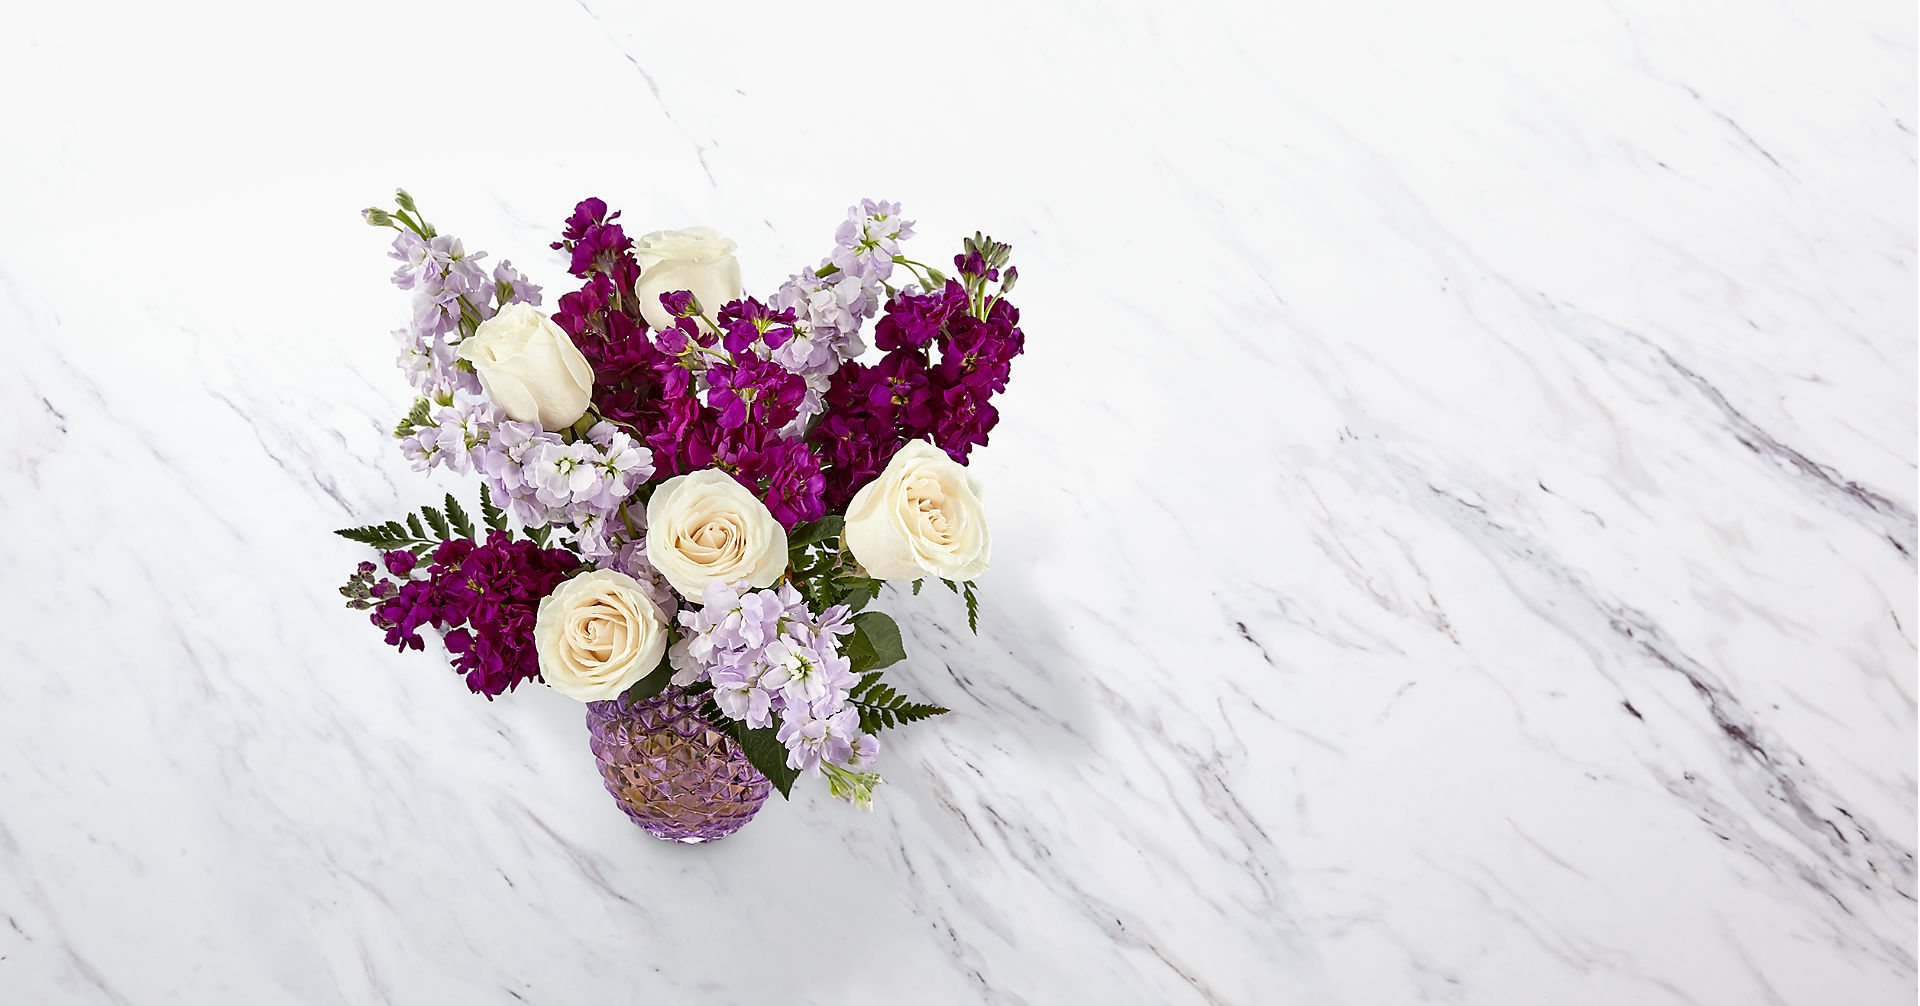 Sweet Devotion™ Bouquet-VASE INCLUDED - Image 2 Of 2